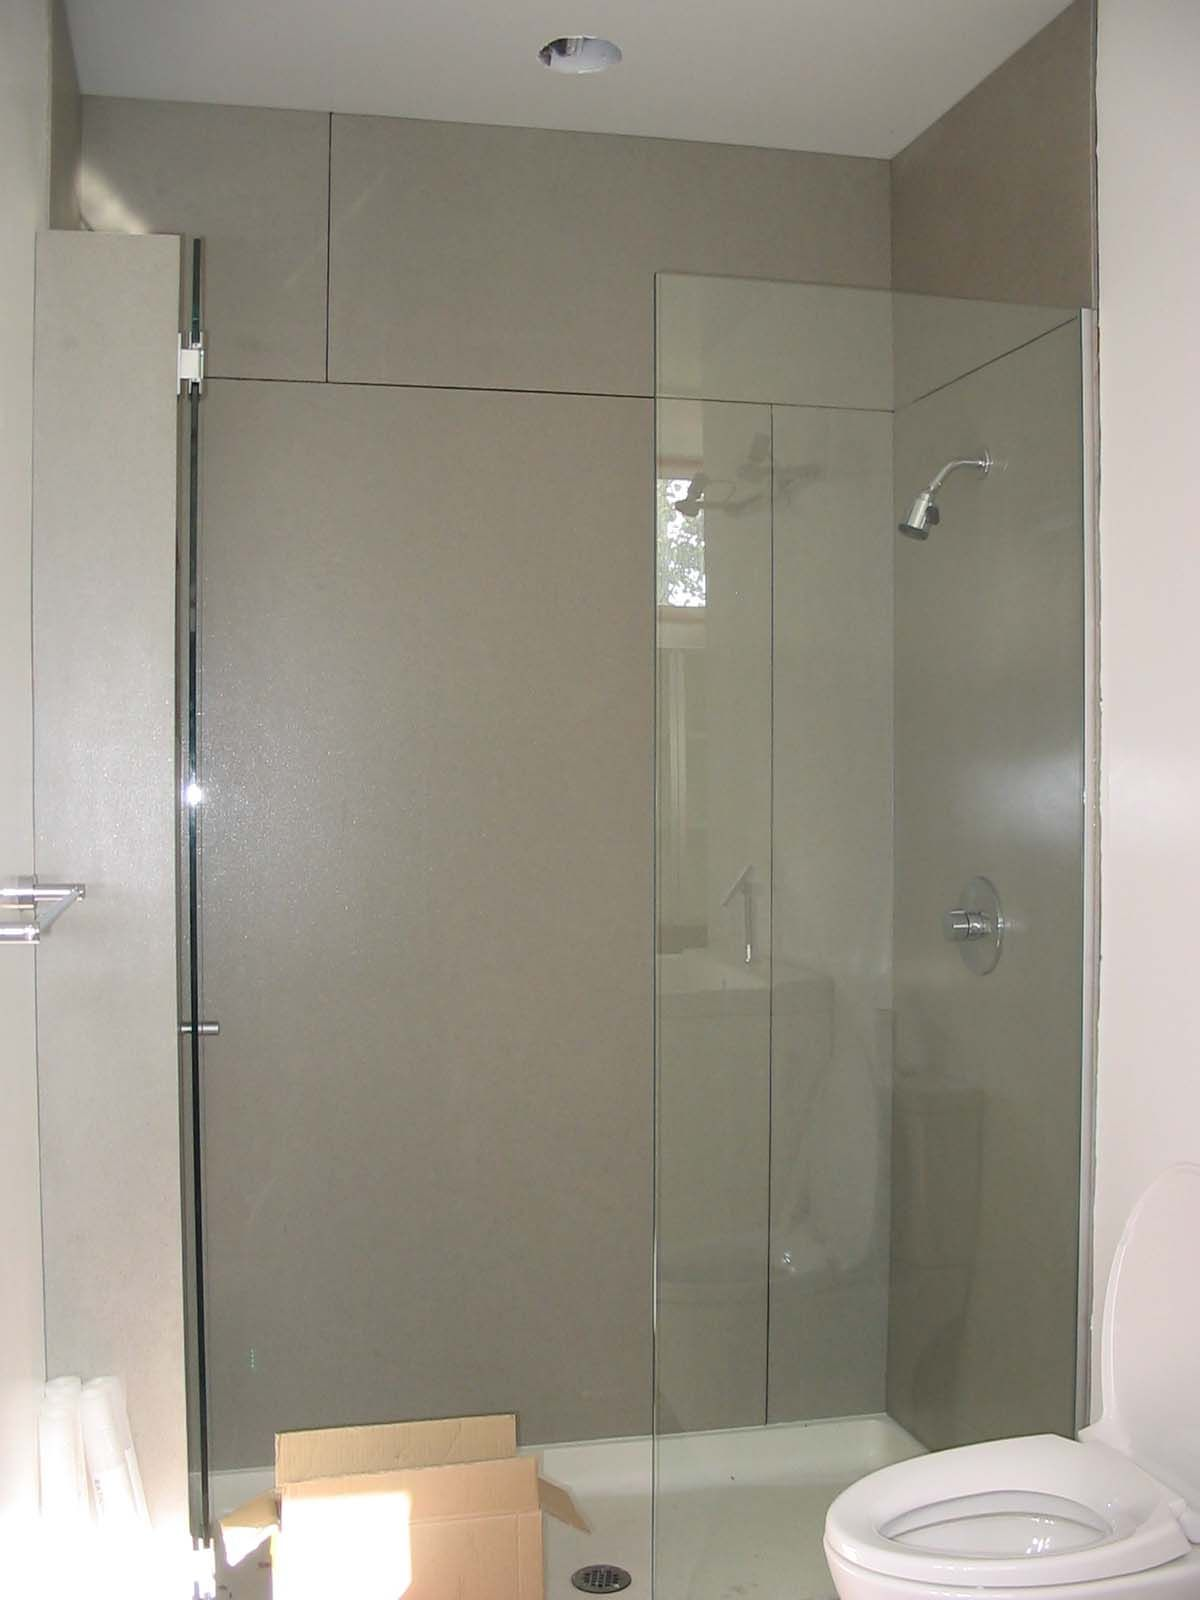 Concrete shower walls any suggestions bathroom redo for Bathroom shower walls